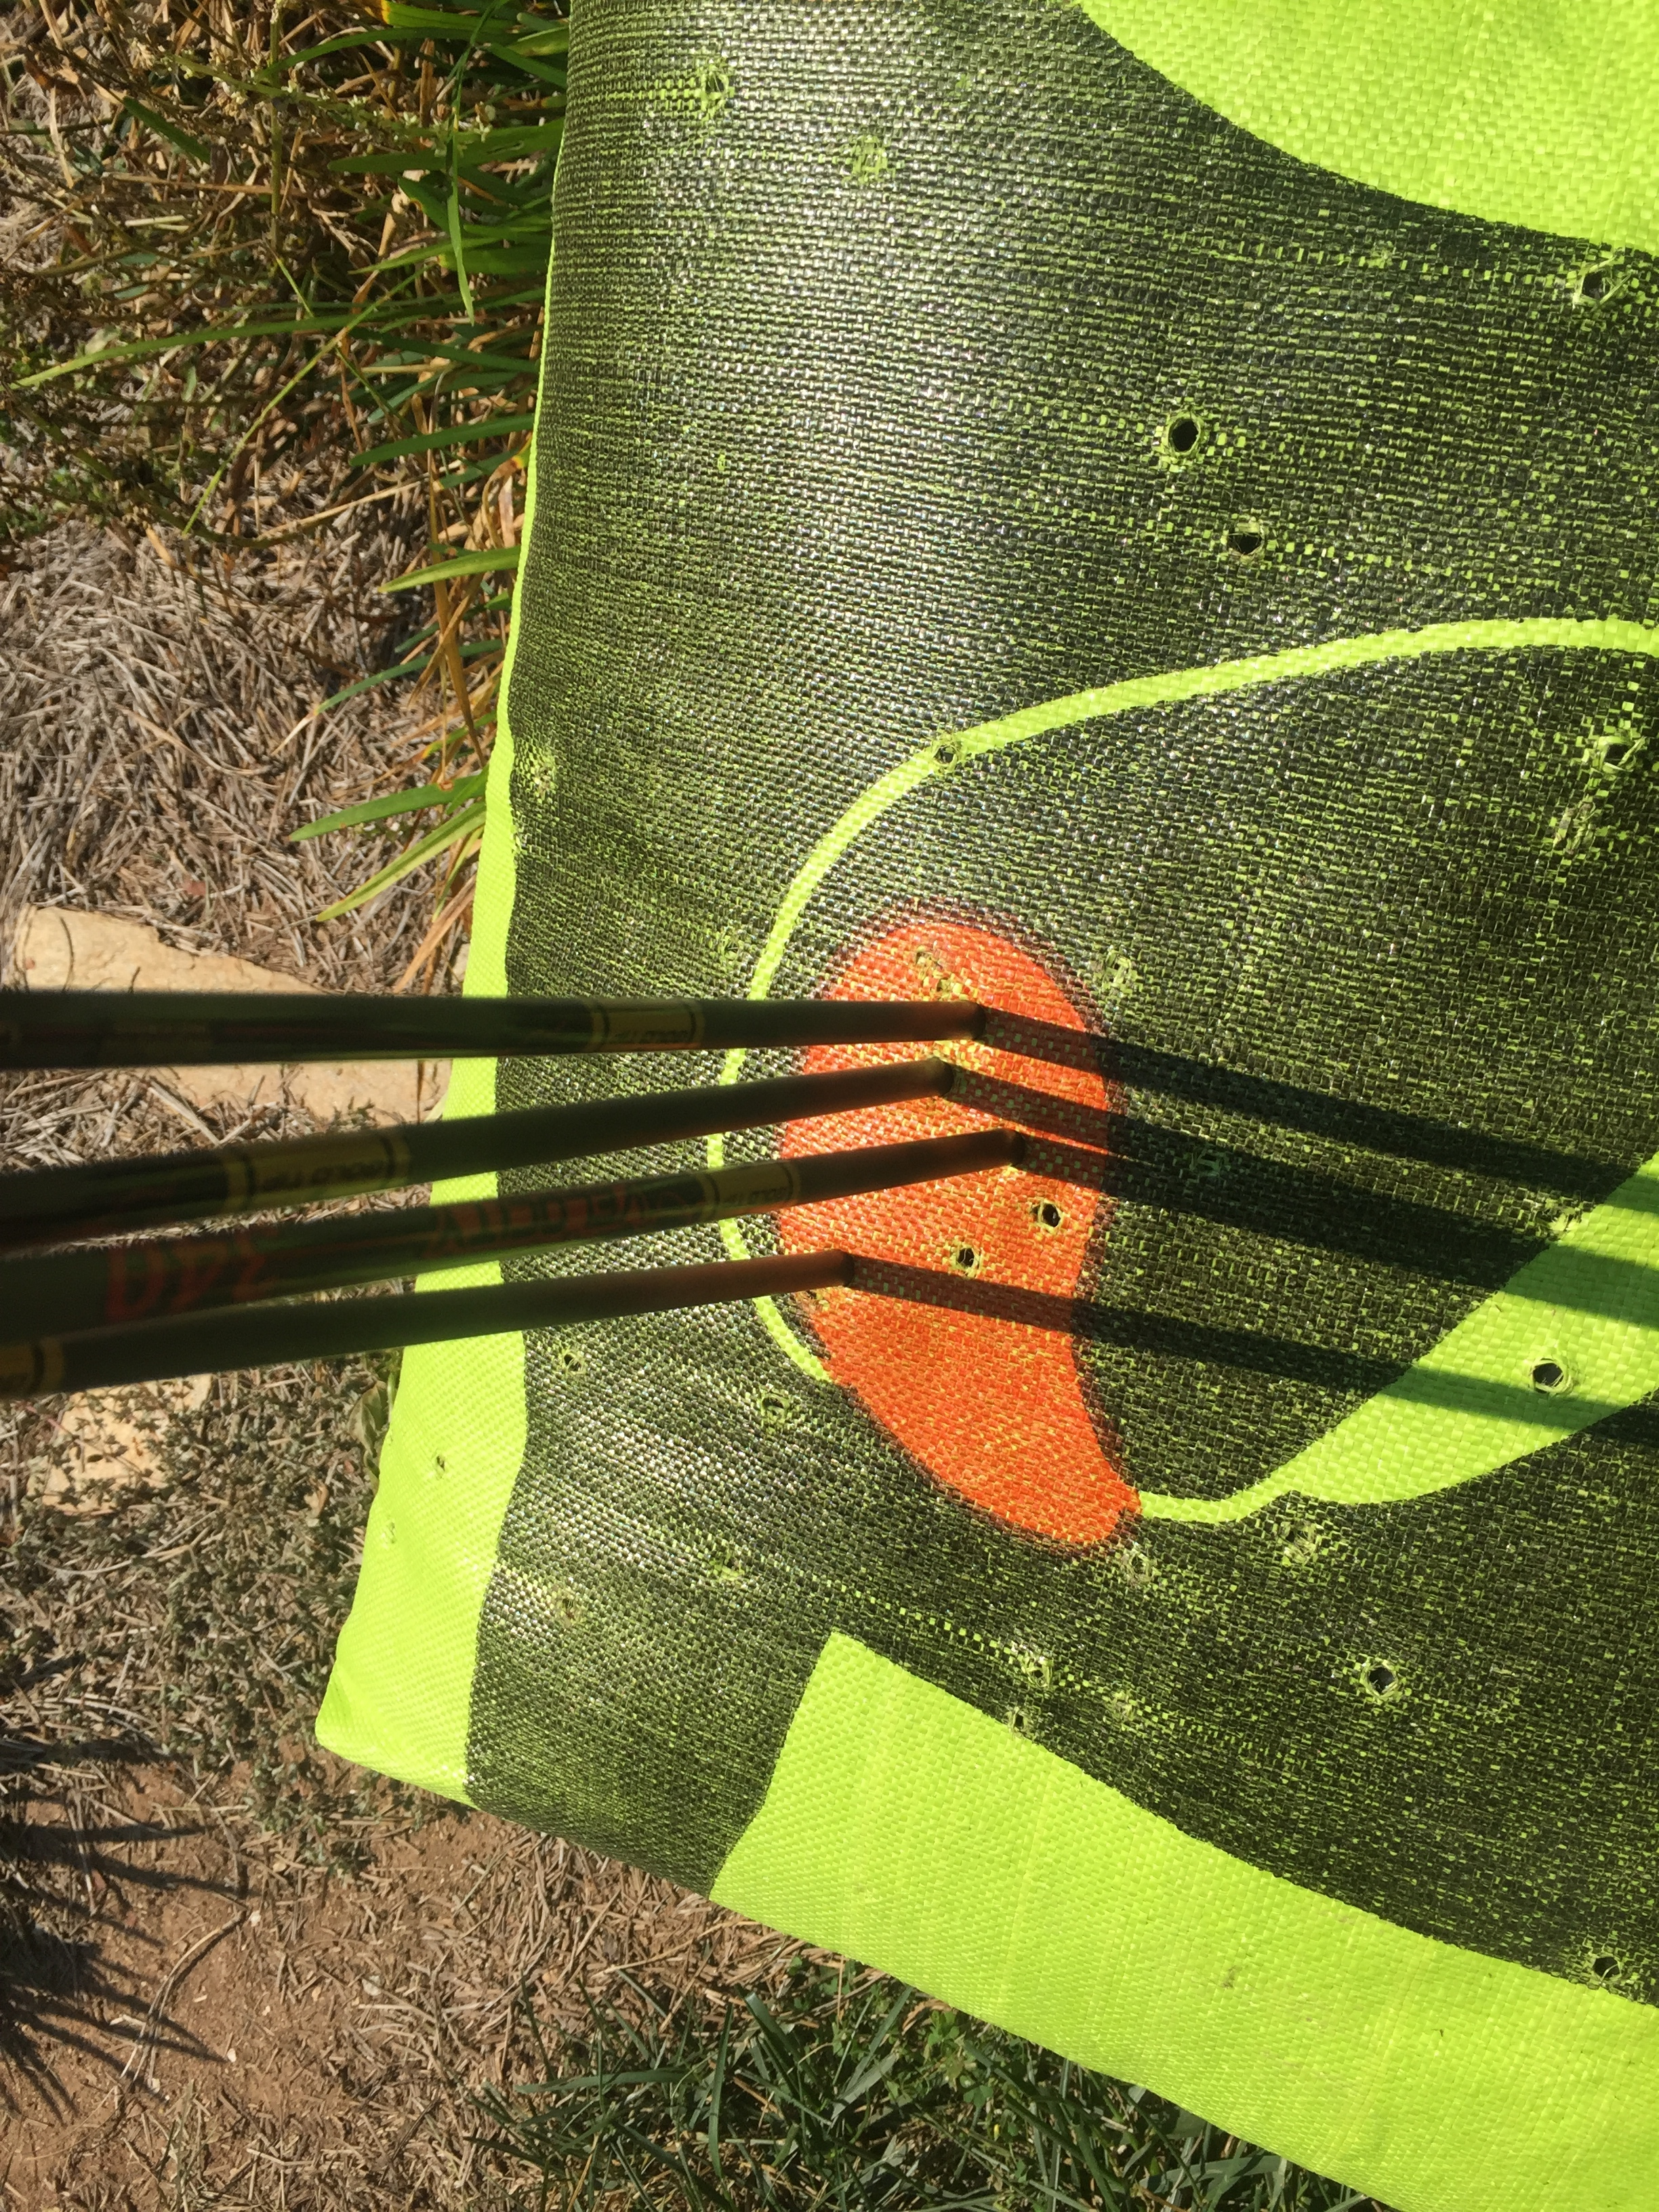 Sighting in the new bow. Looks like I am set for 20 yards!